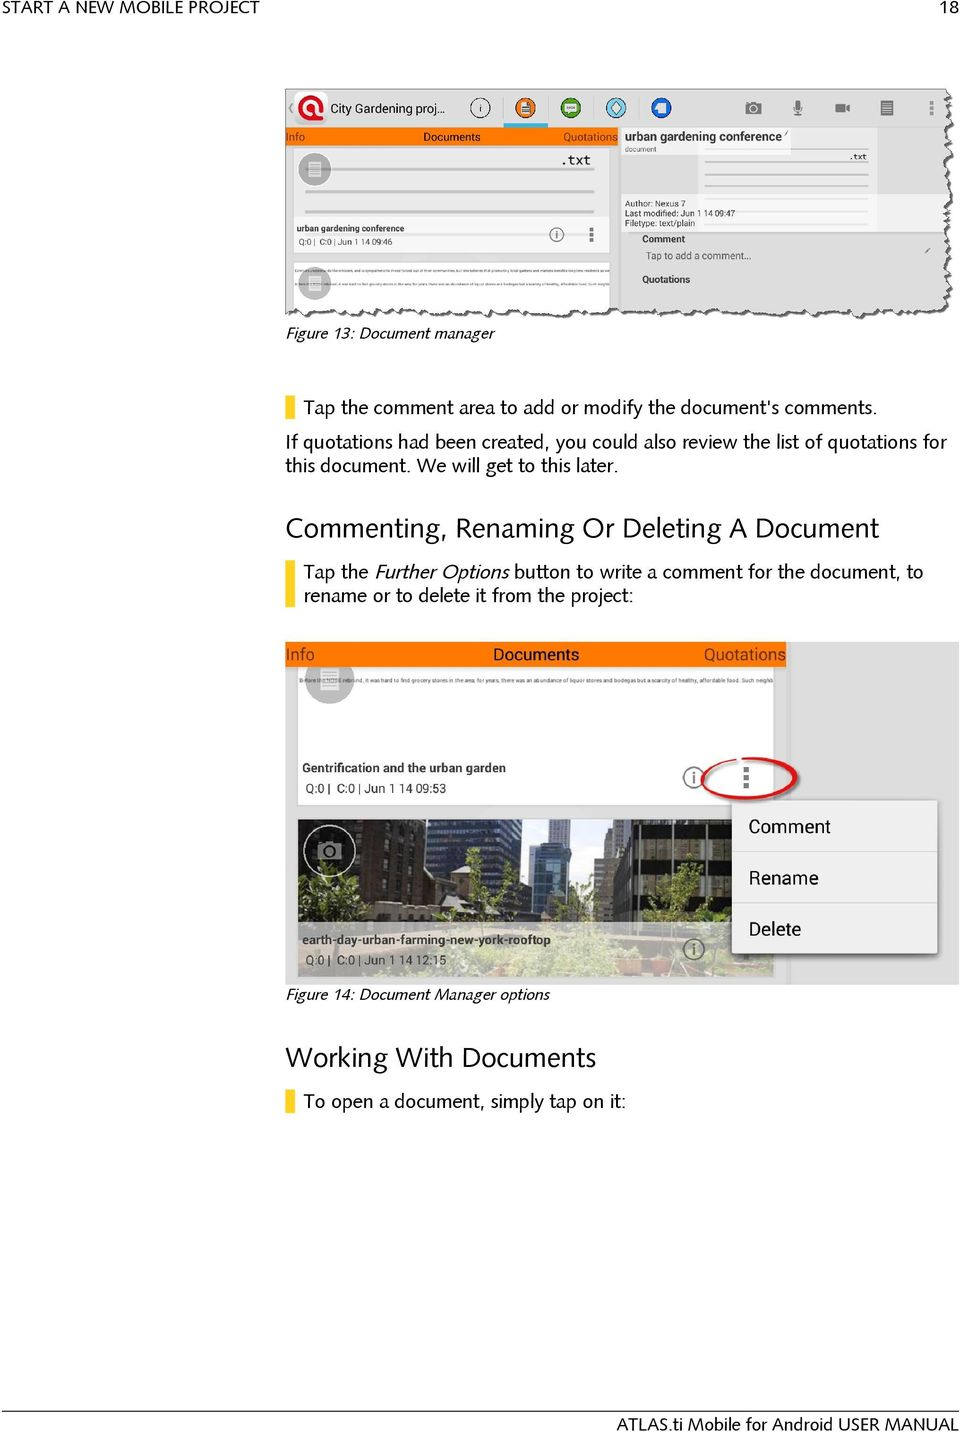 Commenting, Renaming Or Deleting A Document Tap the Further Options button to write a comment for the document, to rename